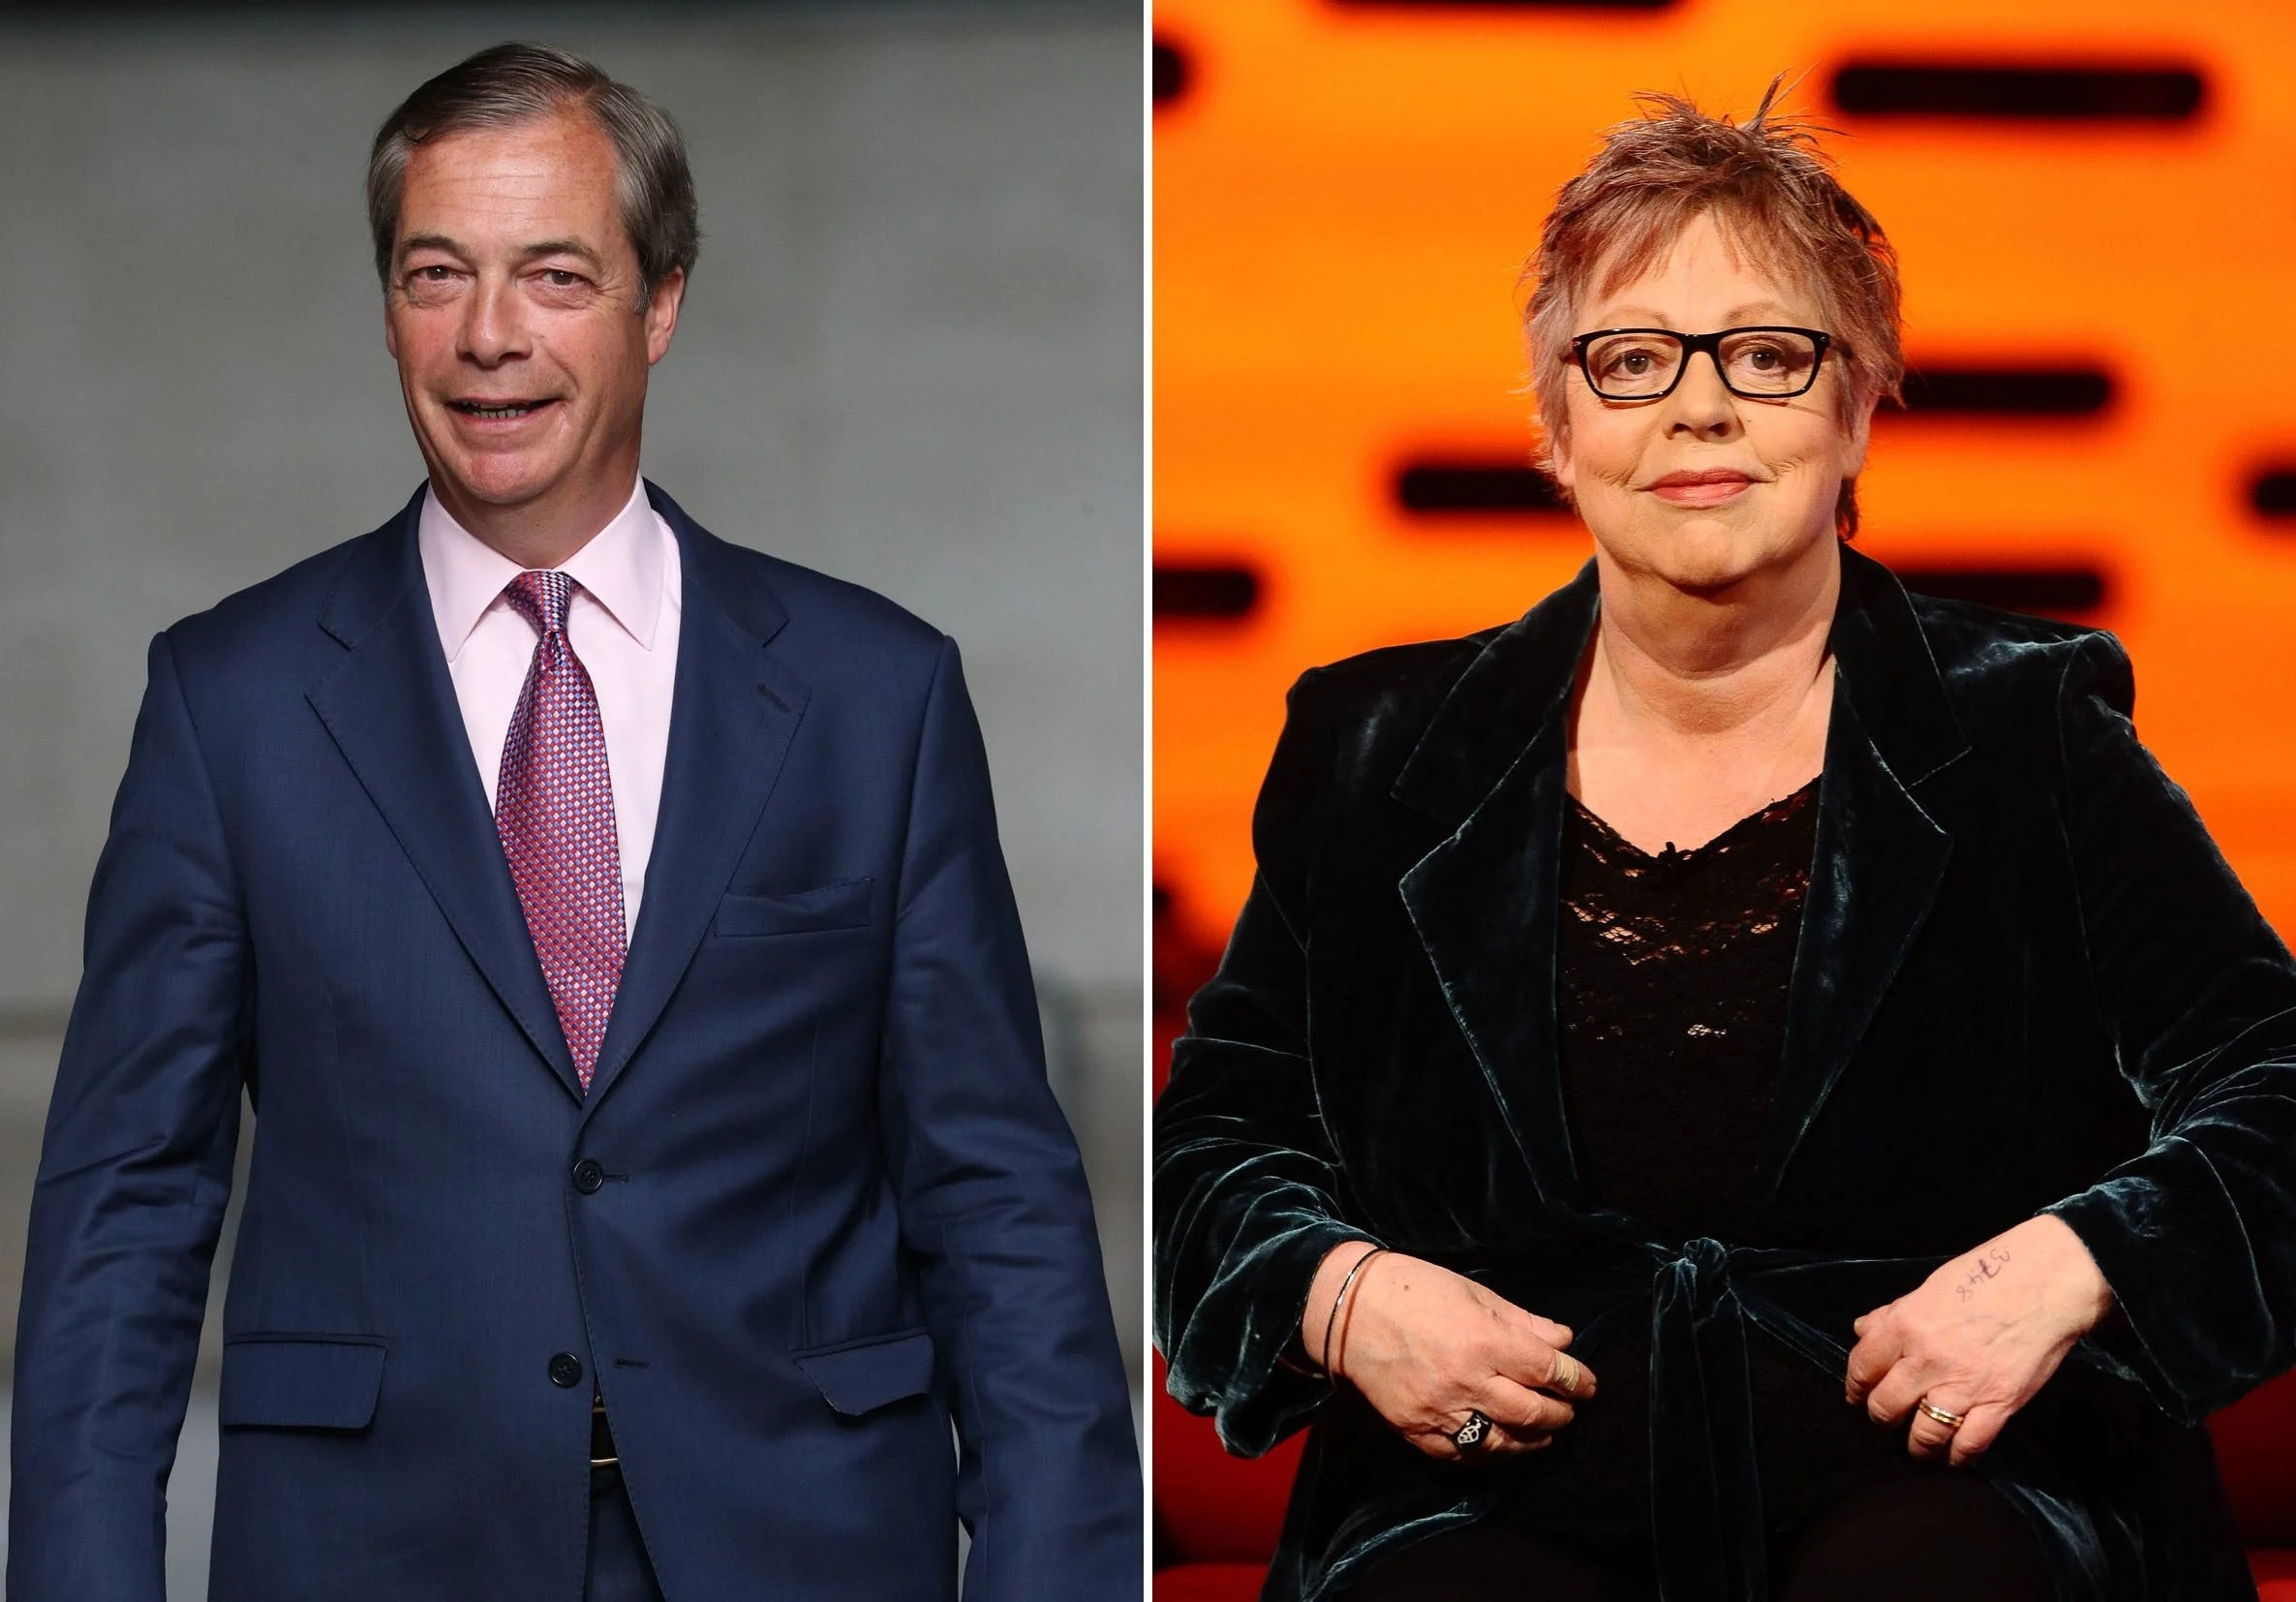 Jo-Brand-and-Nigel-Farage BBC must explain why it broadcast Jo Brand's battery acid comments over Nigel Farage, Theresa May says